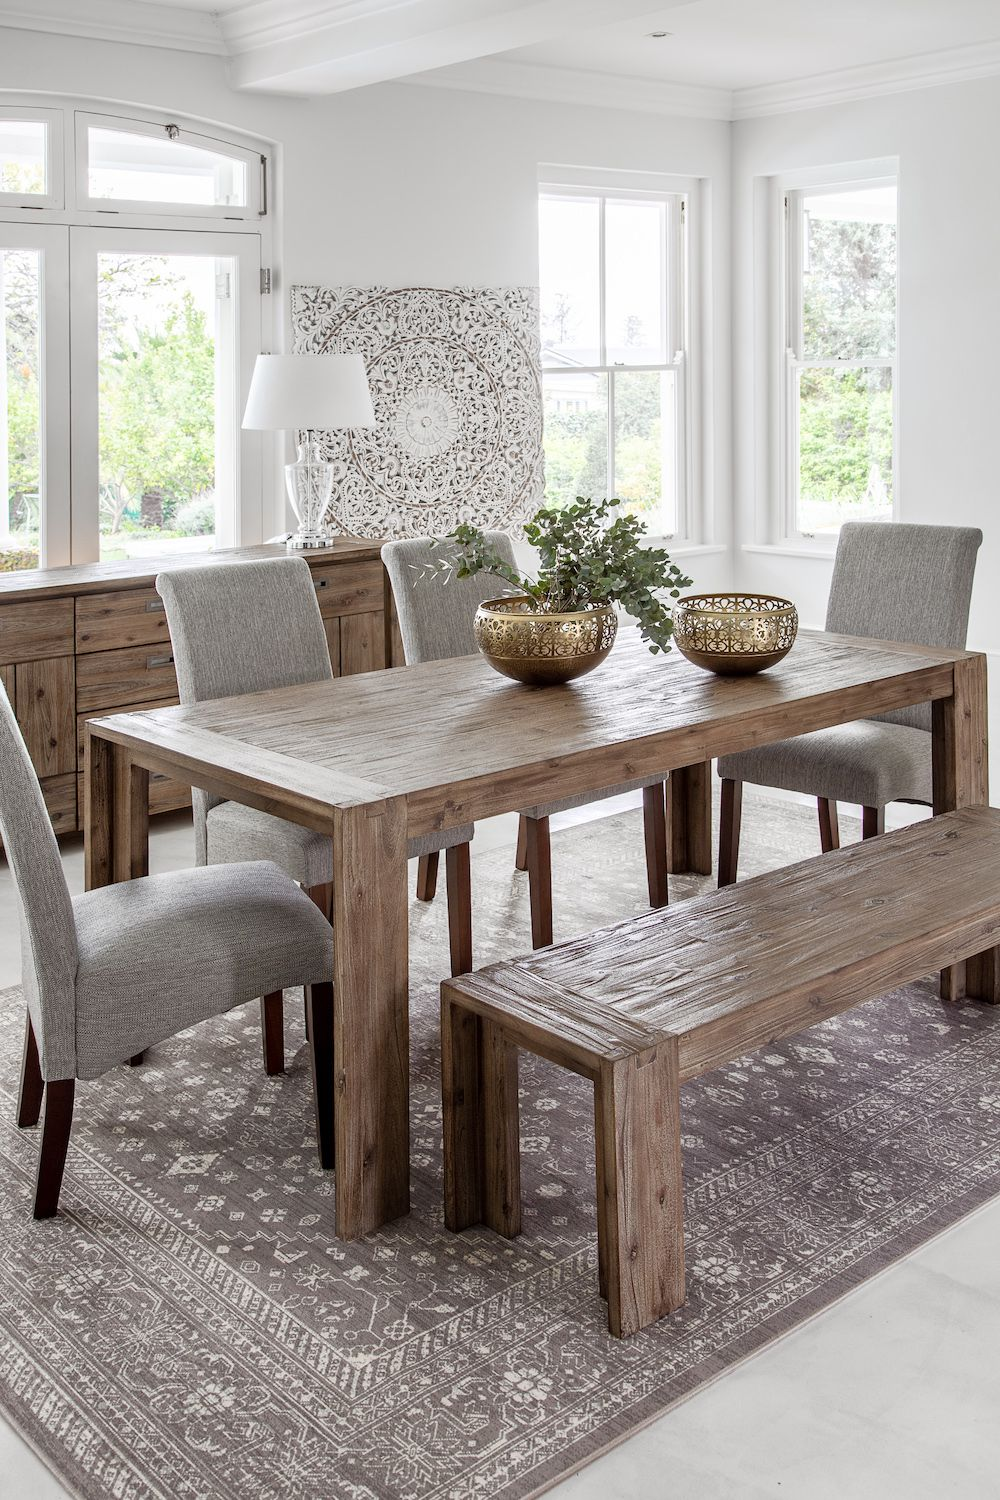 Pin By Coricraft On The Dining Room In 2020 Dining Room Furniture Dining Furniture Furniture